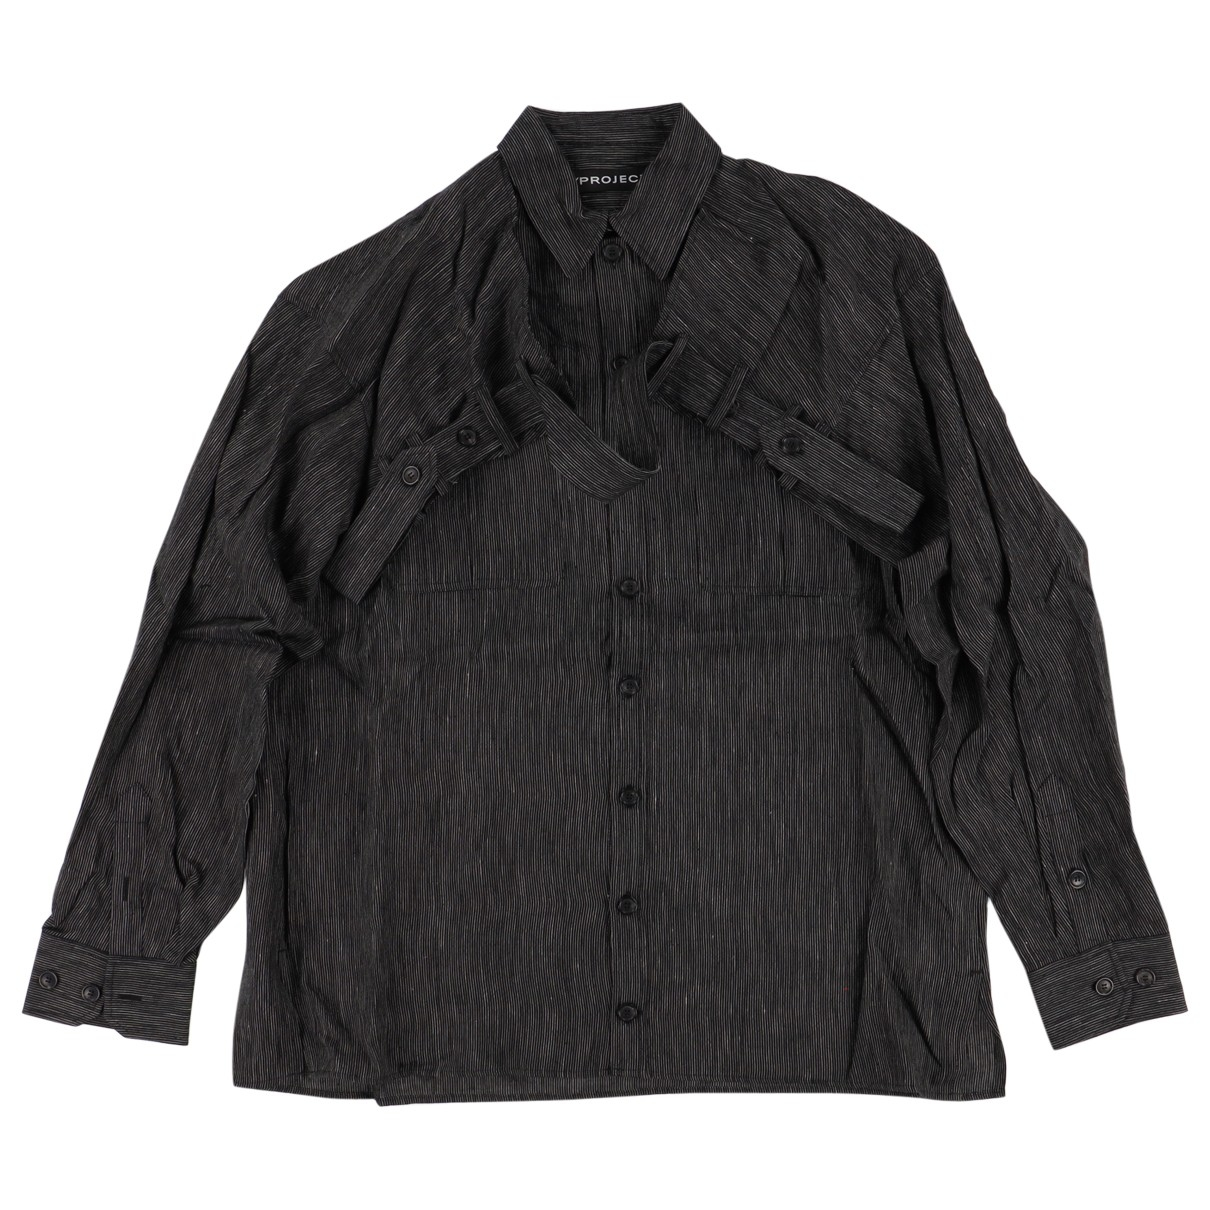 Y/project \N Grey Cotton Shirts for Men S International